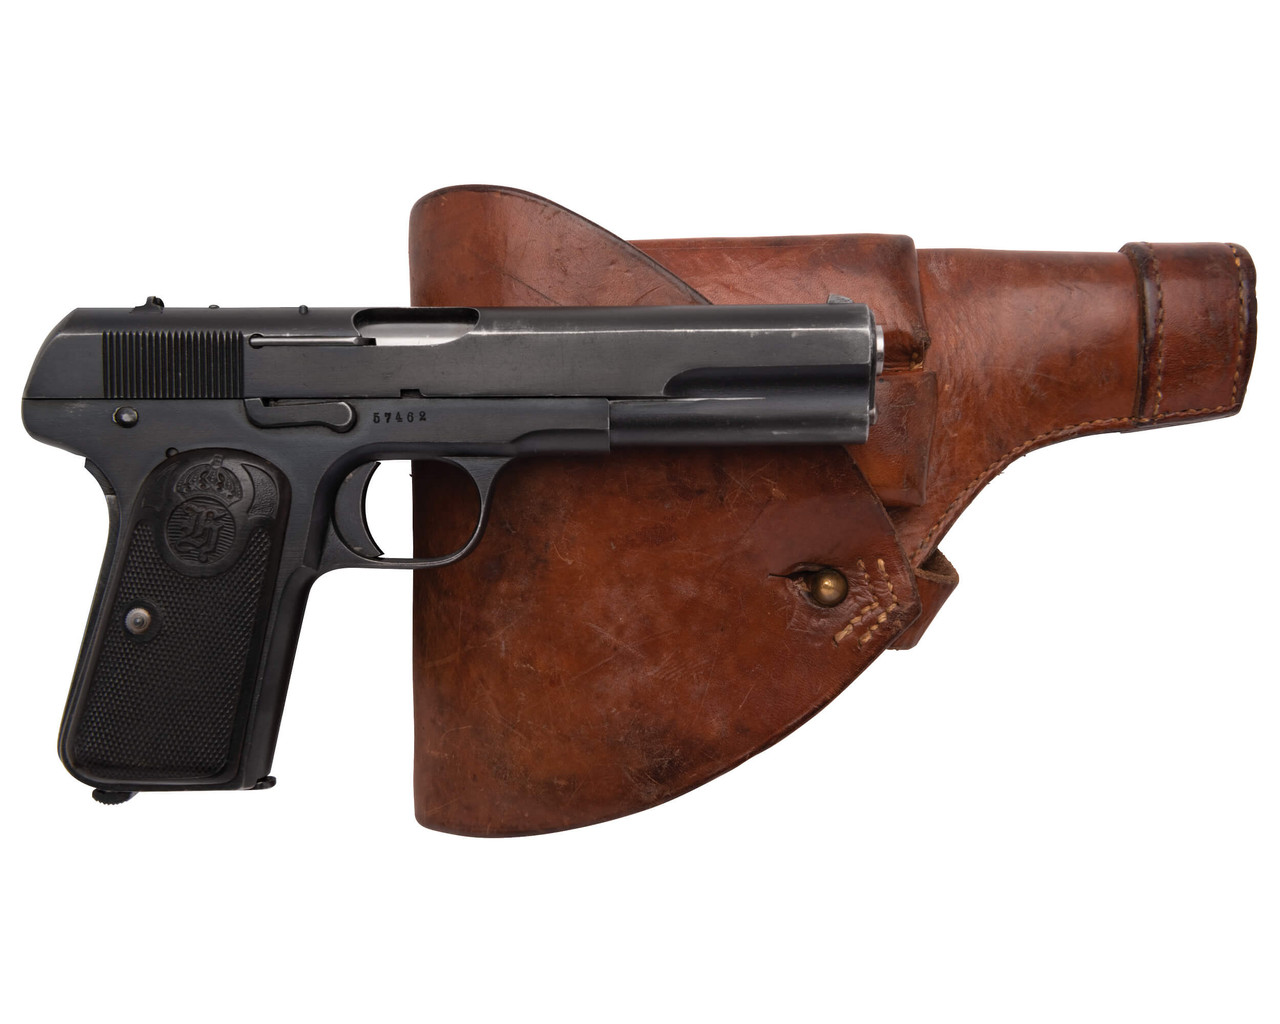 Husqvarna 1907 w/ Holster and Spare Mags - sn 57xxx